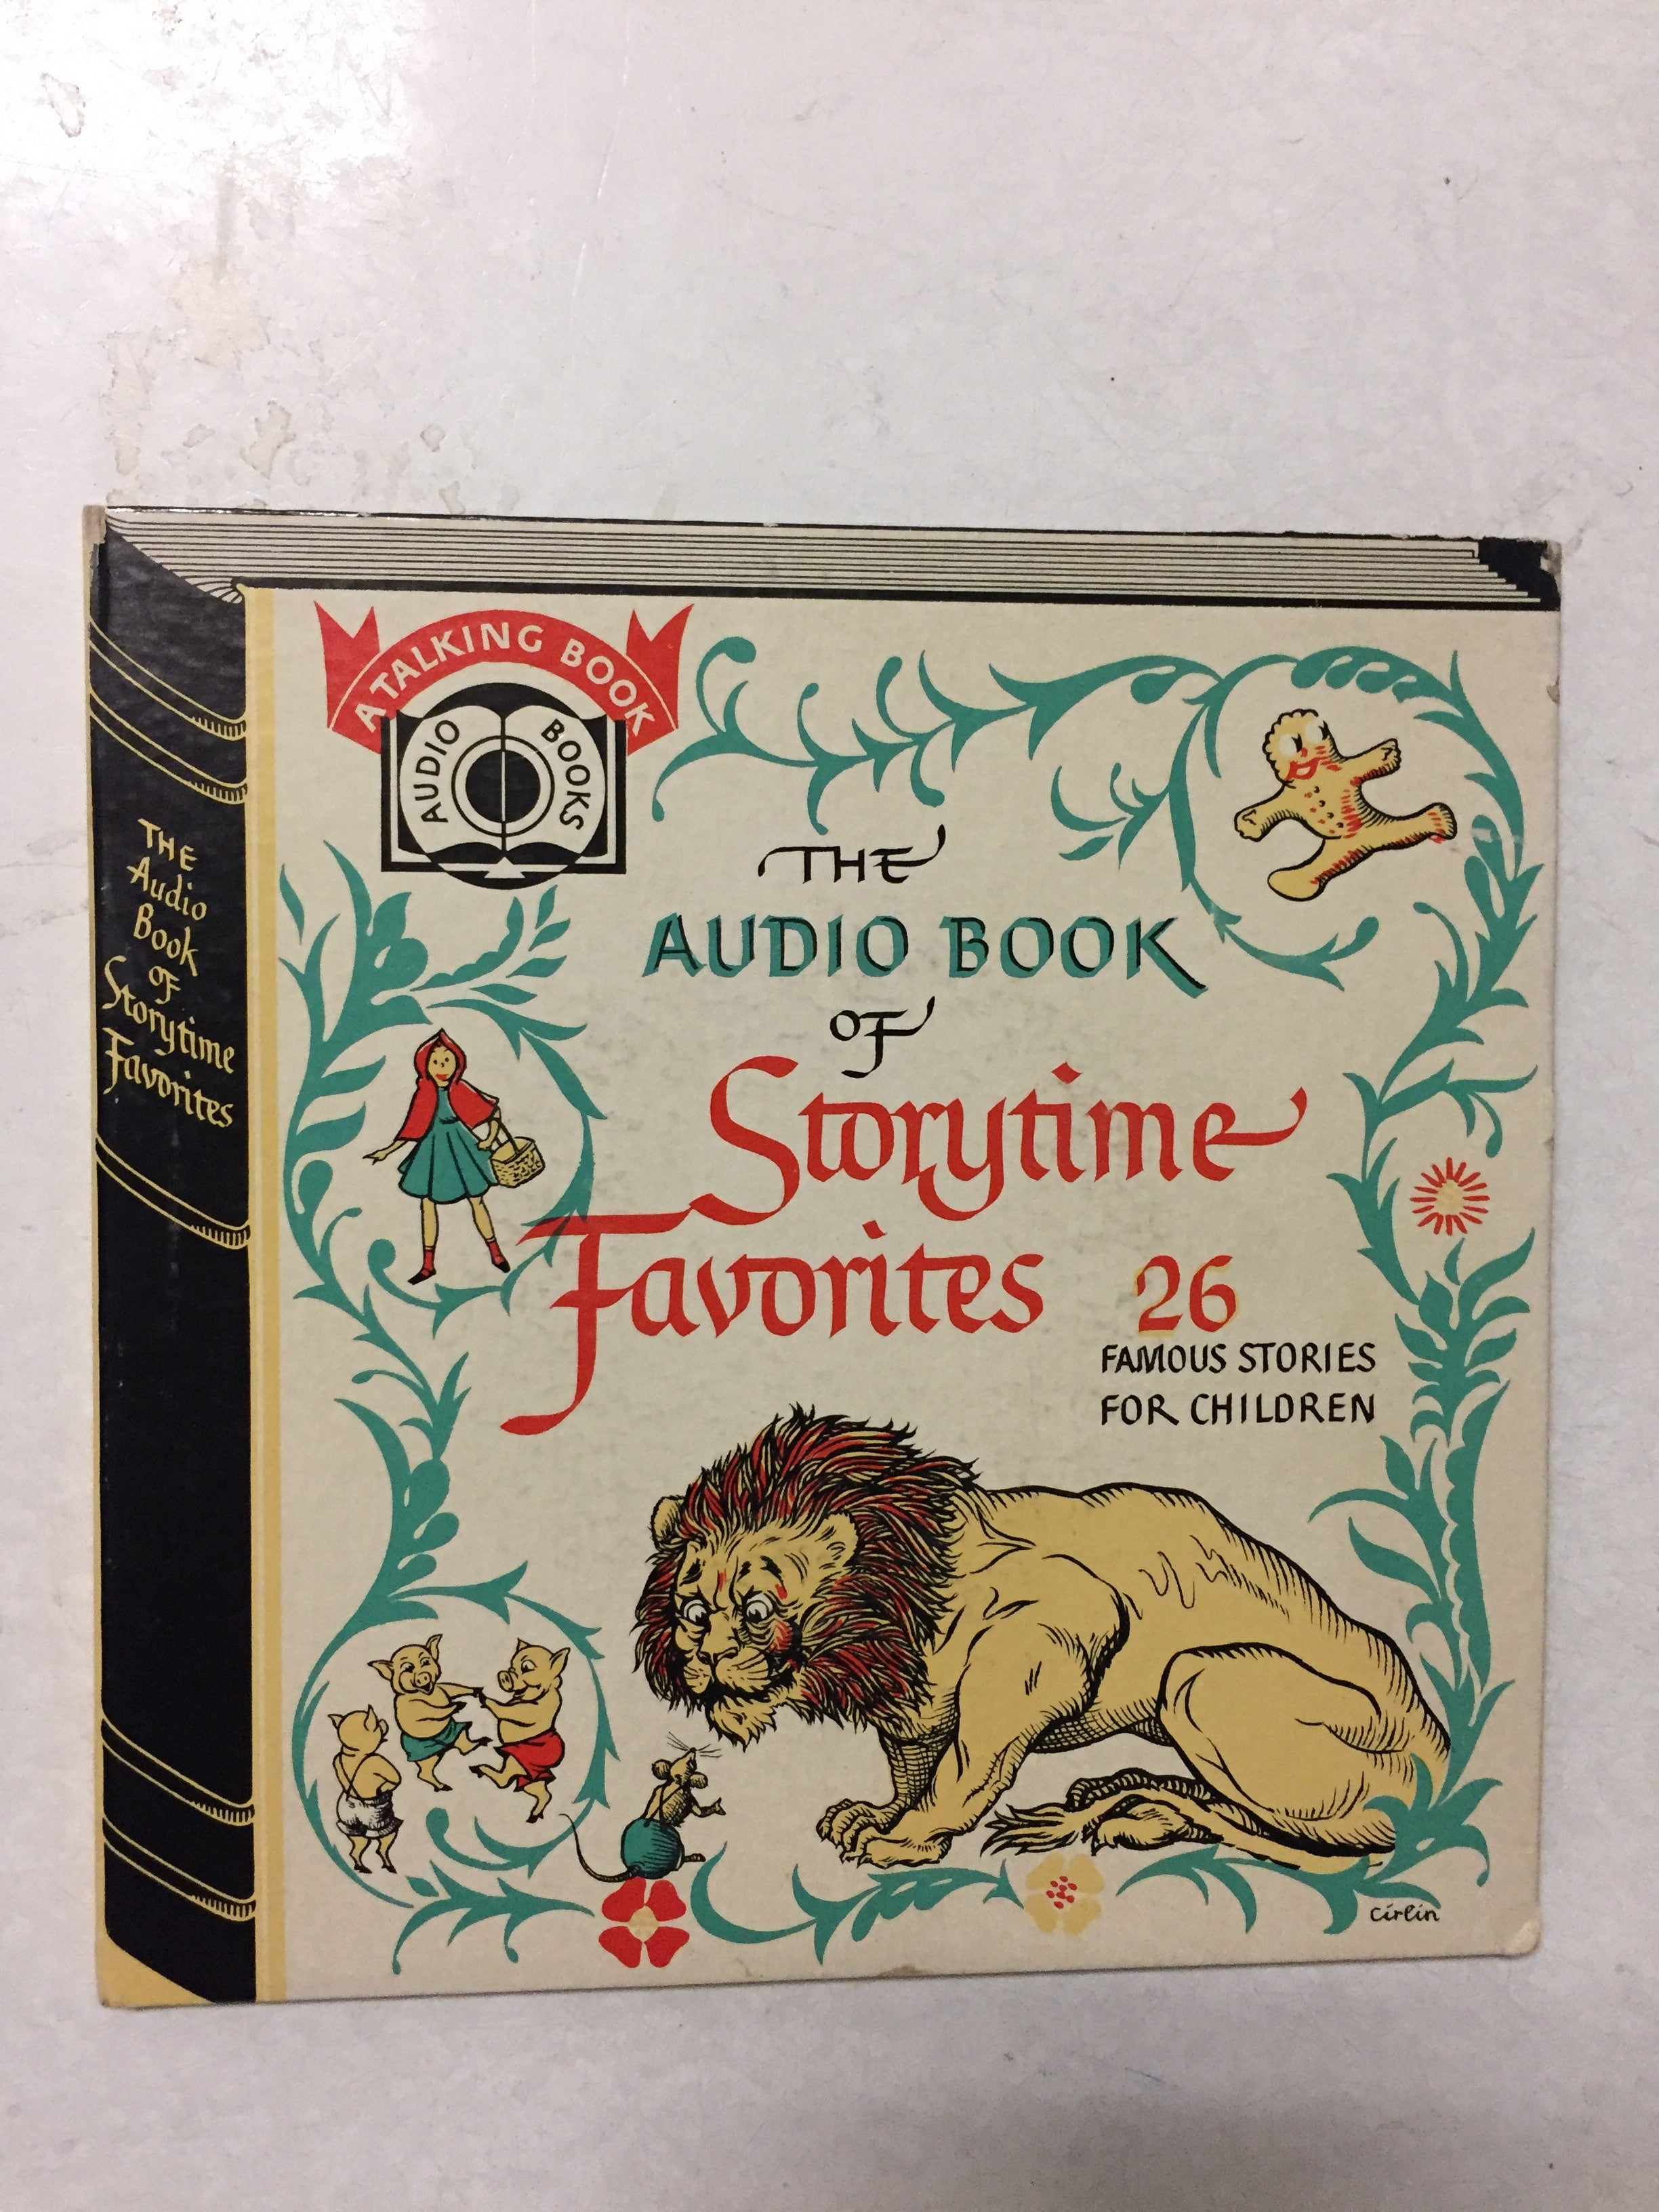 The Audio Book of Storytime Favorites 26 Famous Stories For Children - Slickcatbooks